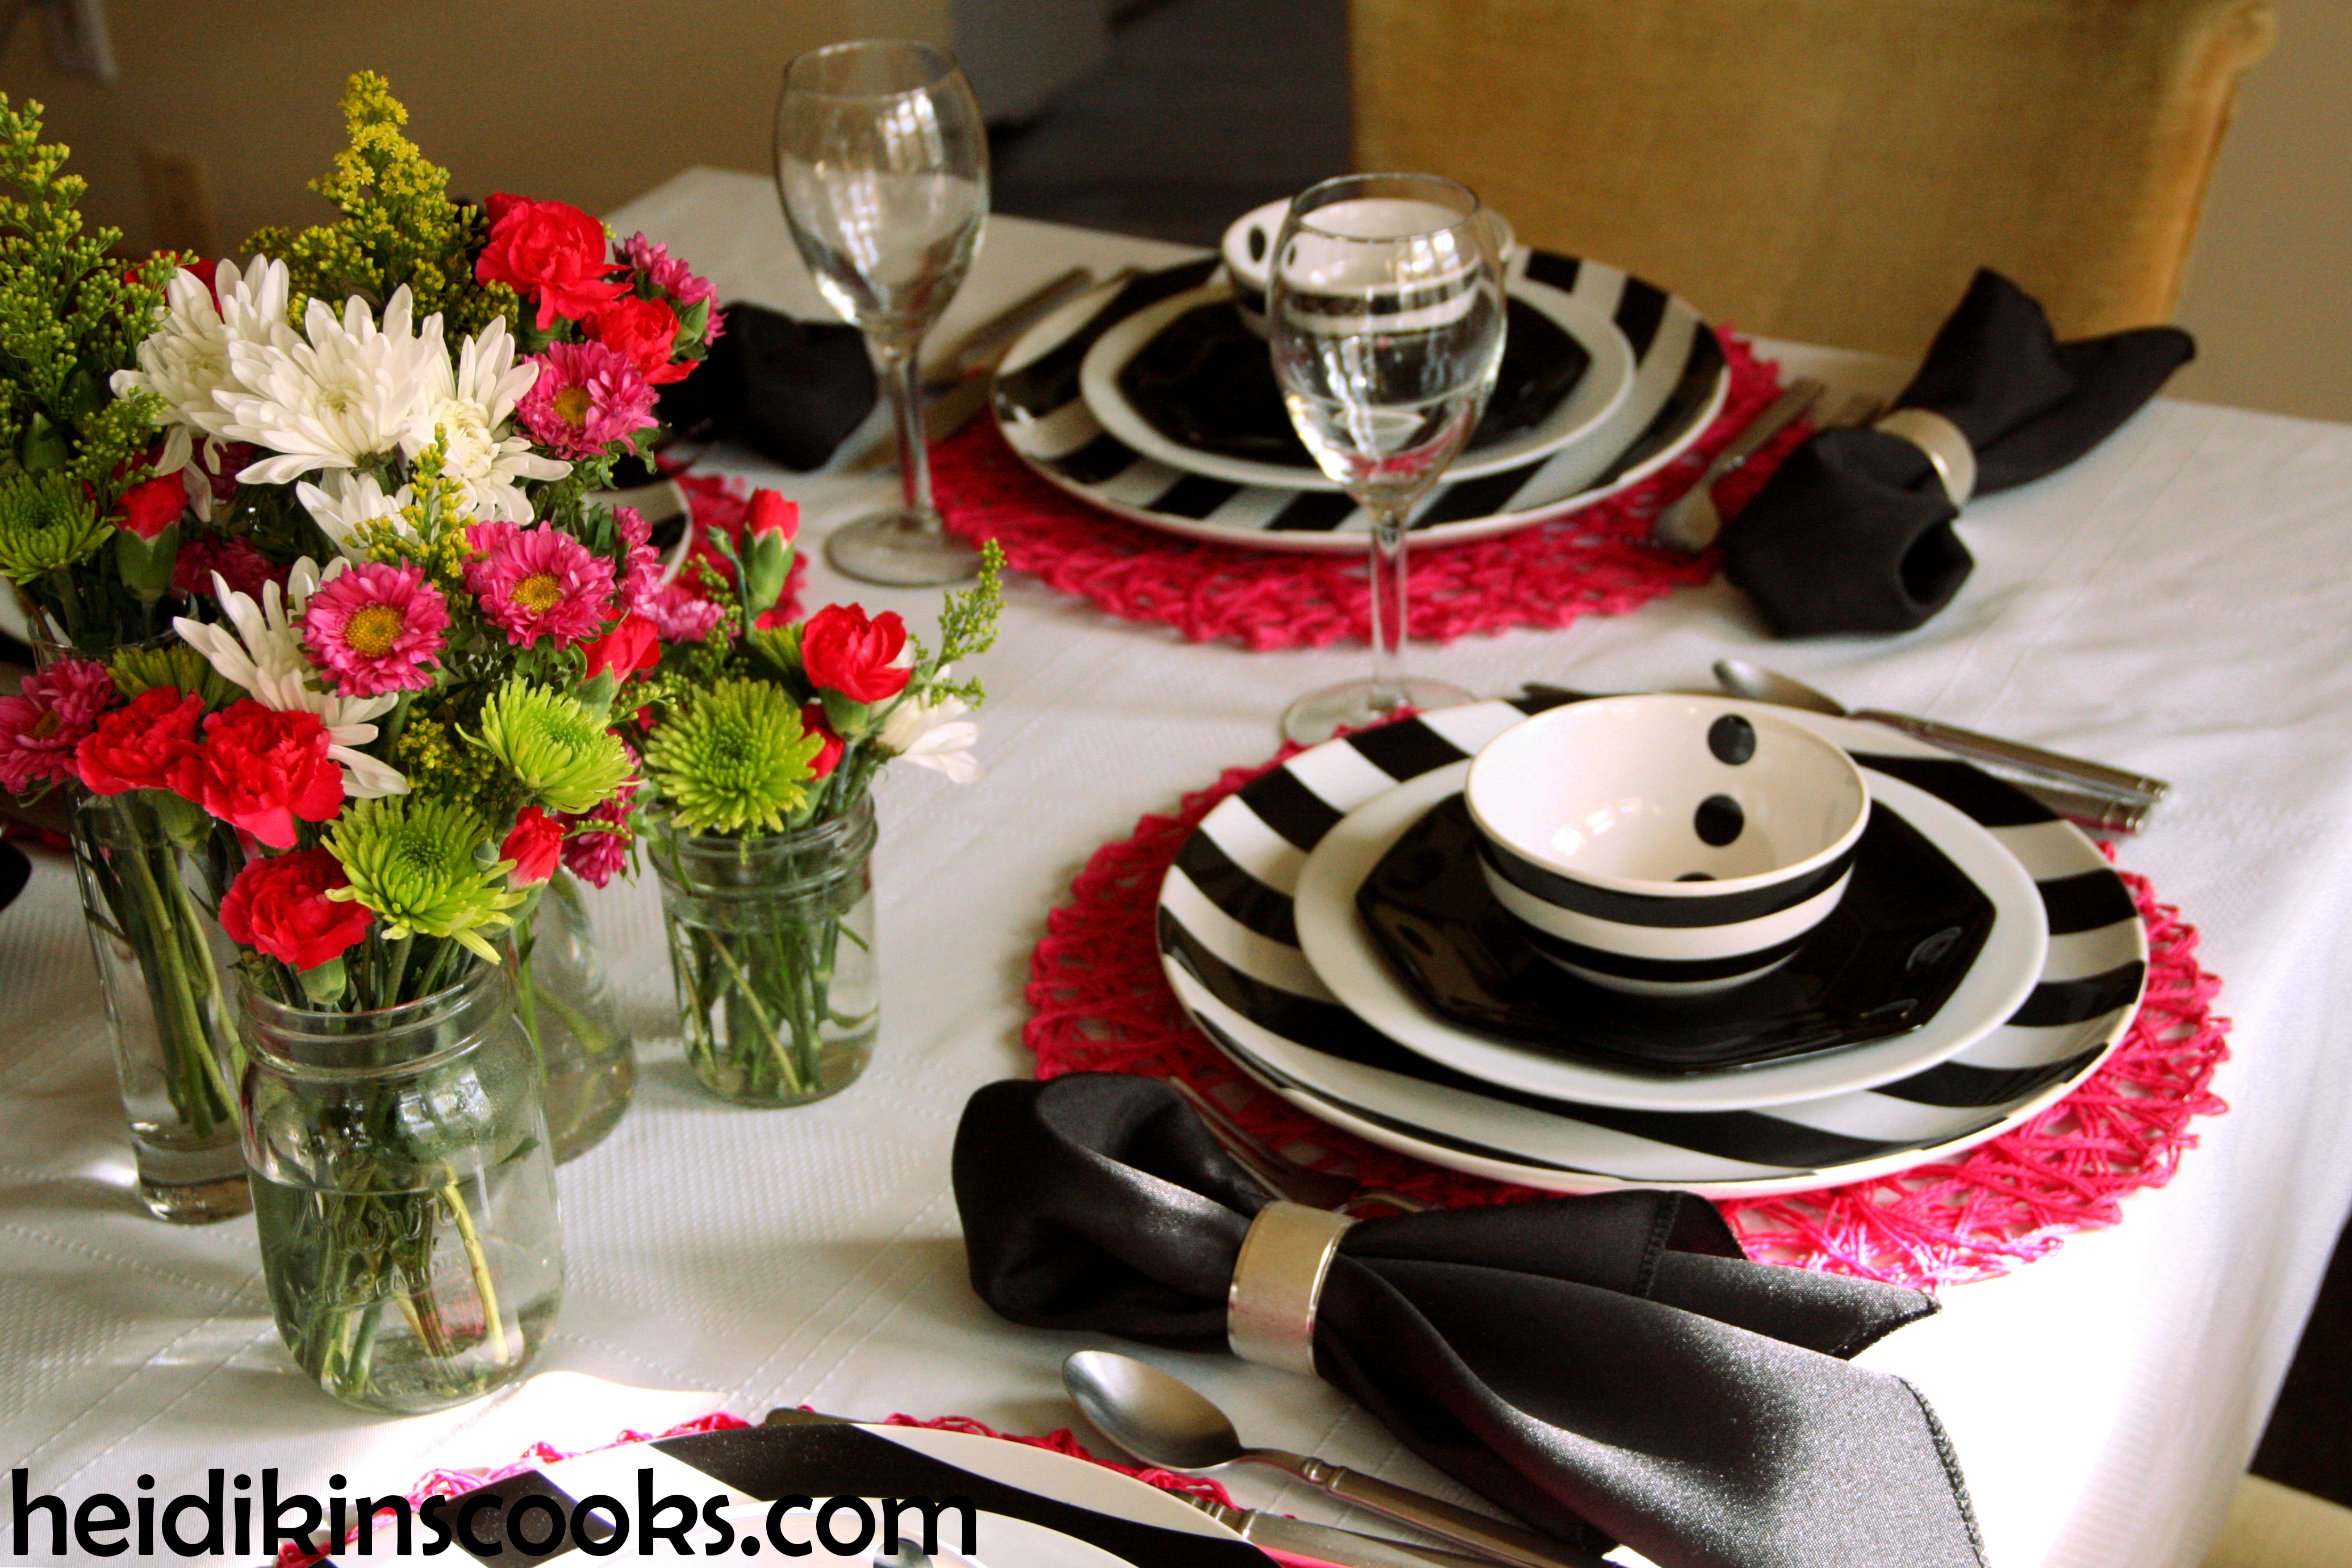 Black and White Stripe Table Setting | heidikins cooks